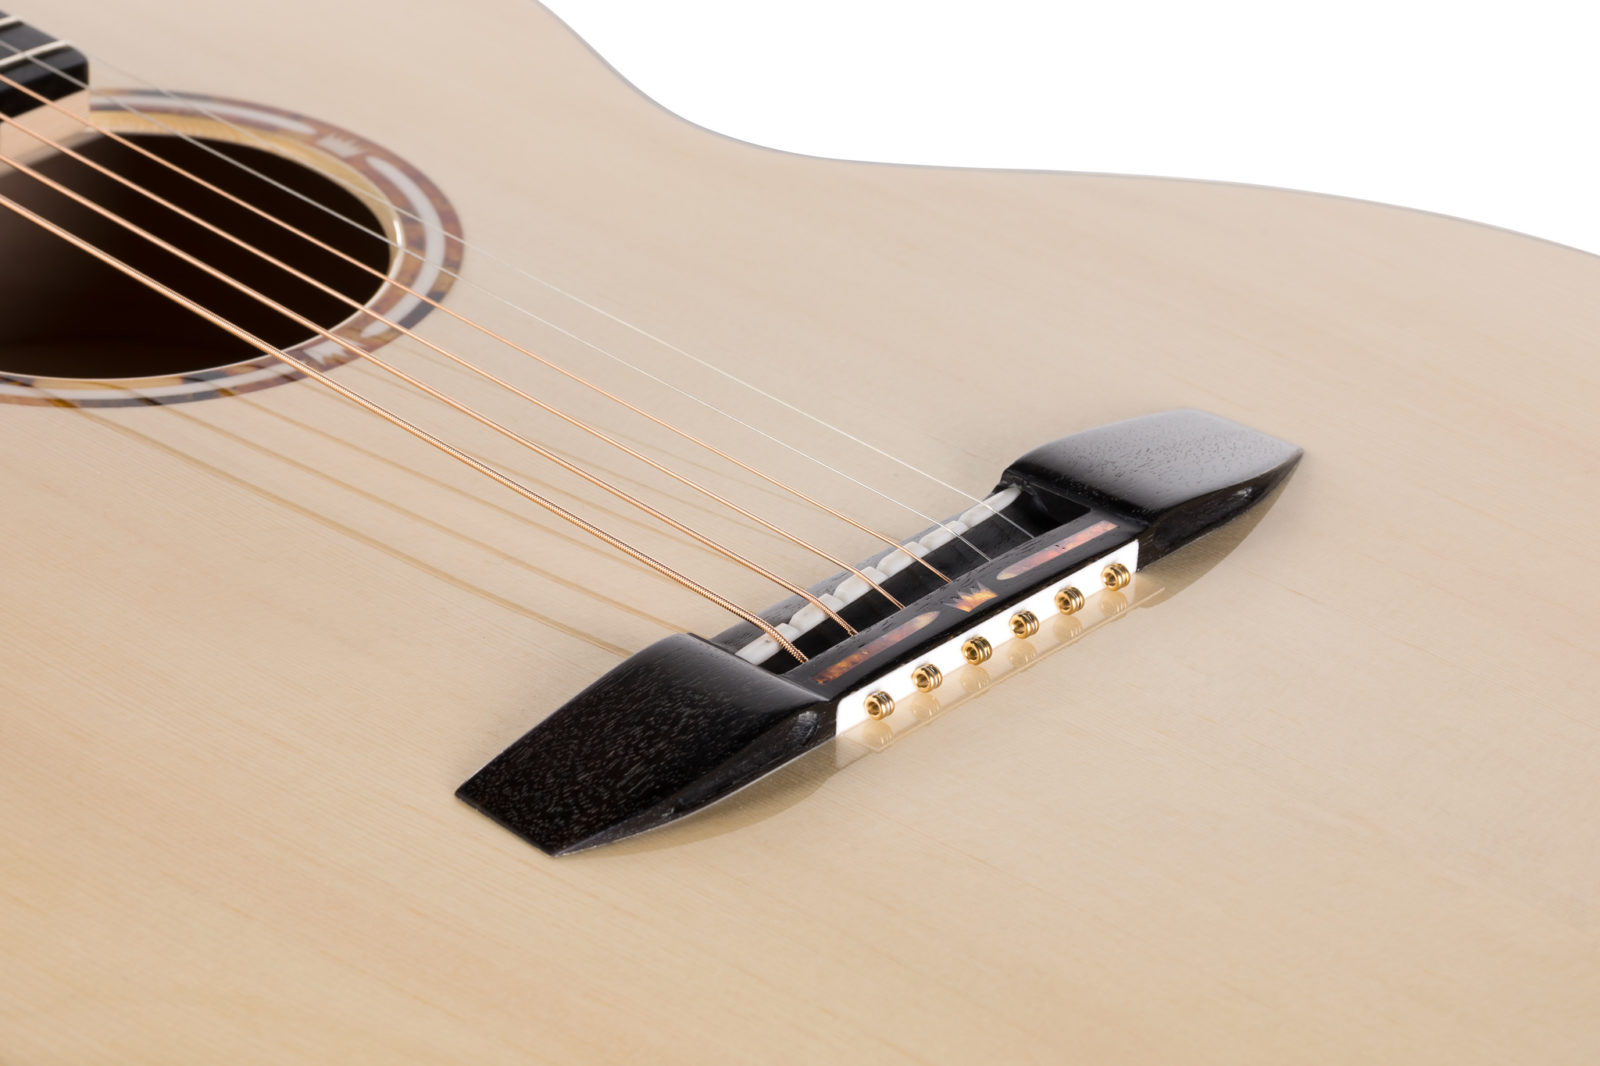 Acoustic Guitar Bridge innovative struture